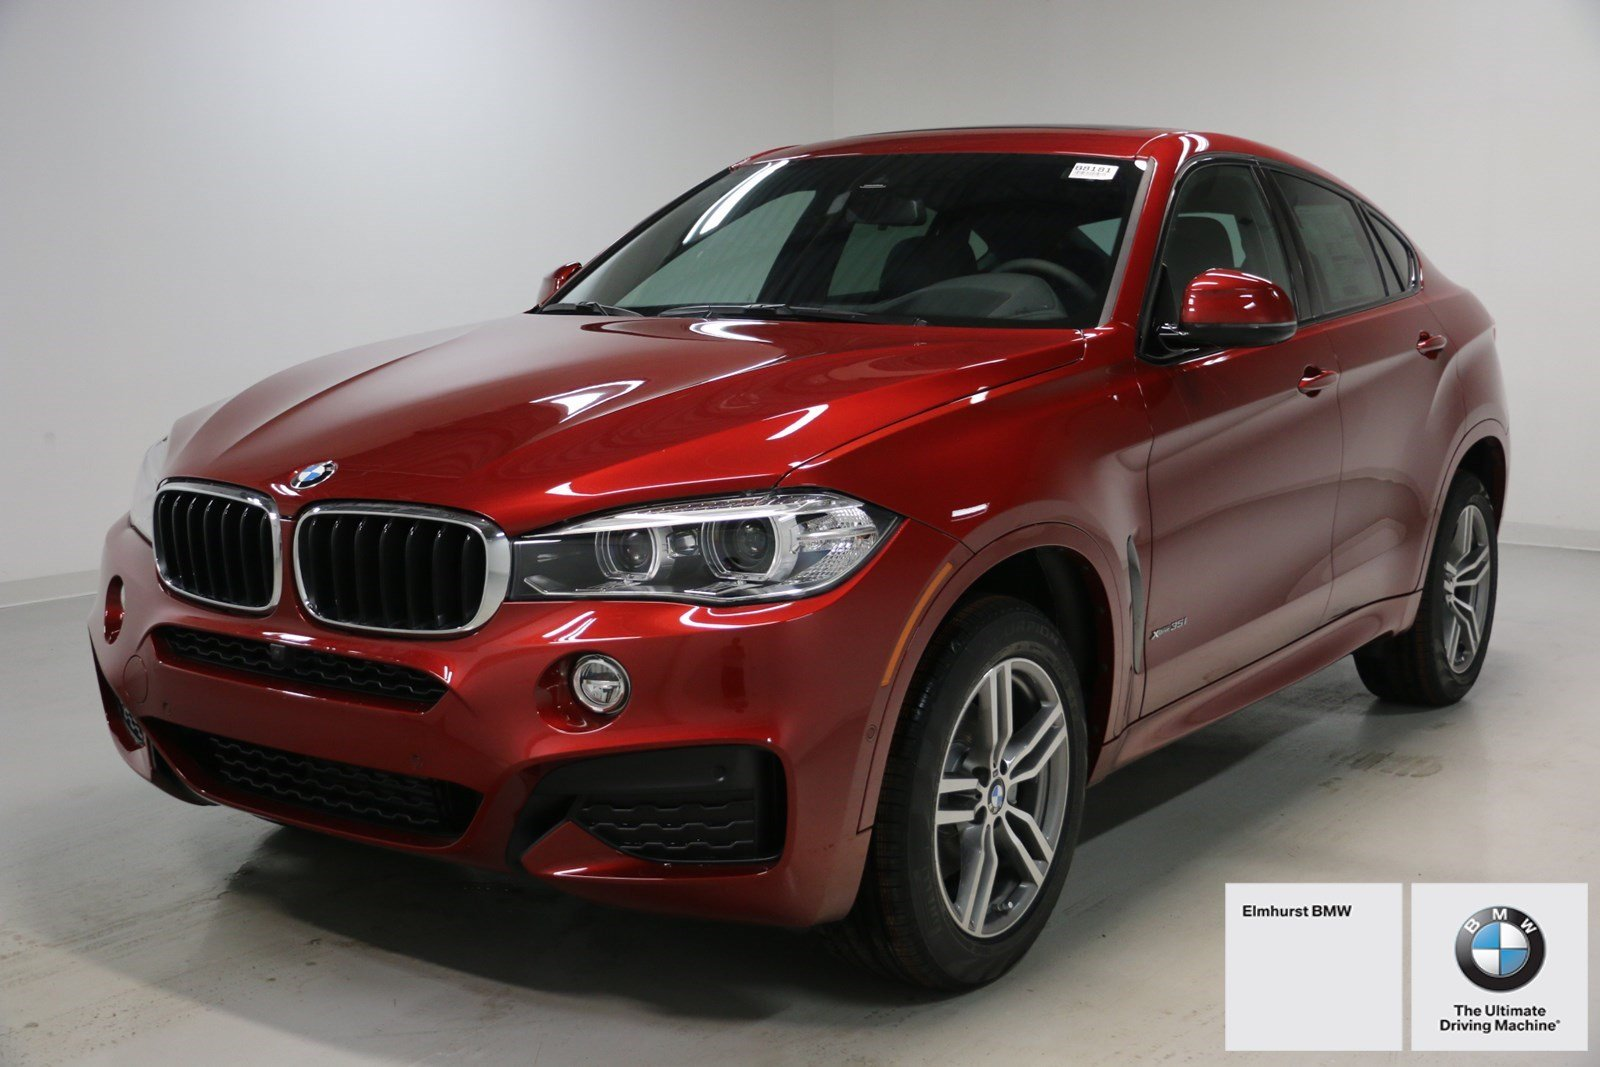 Pre Owned 2018 Bmw X6 Xdrive35i Sport Utility In Elmhurst B8181